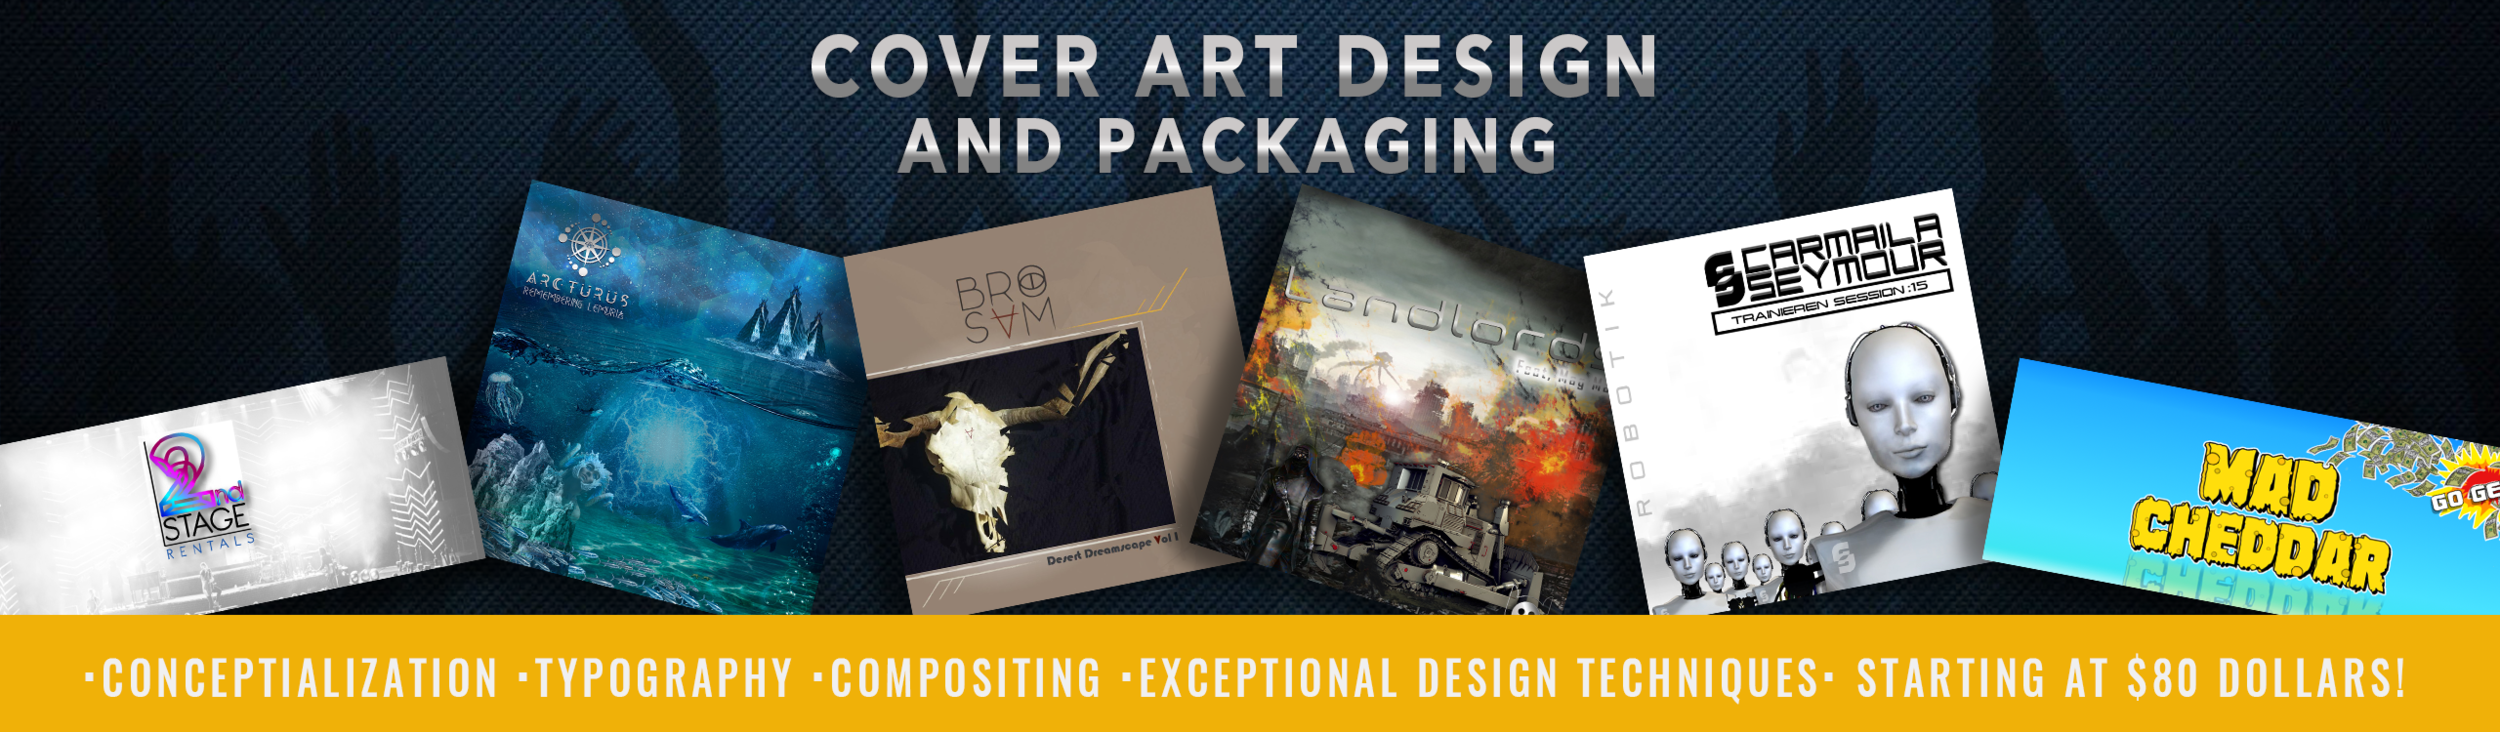 Cover Art and Packaging Banner 1.png